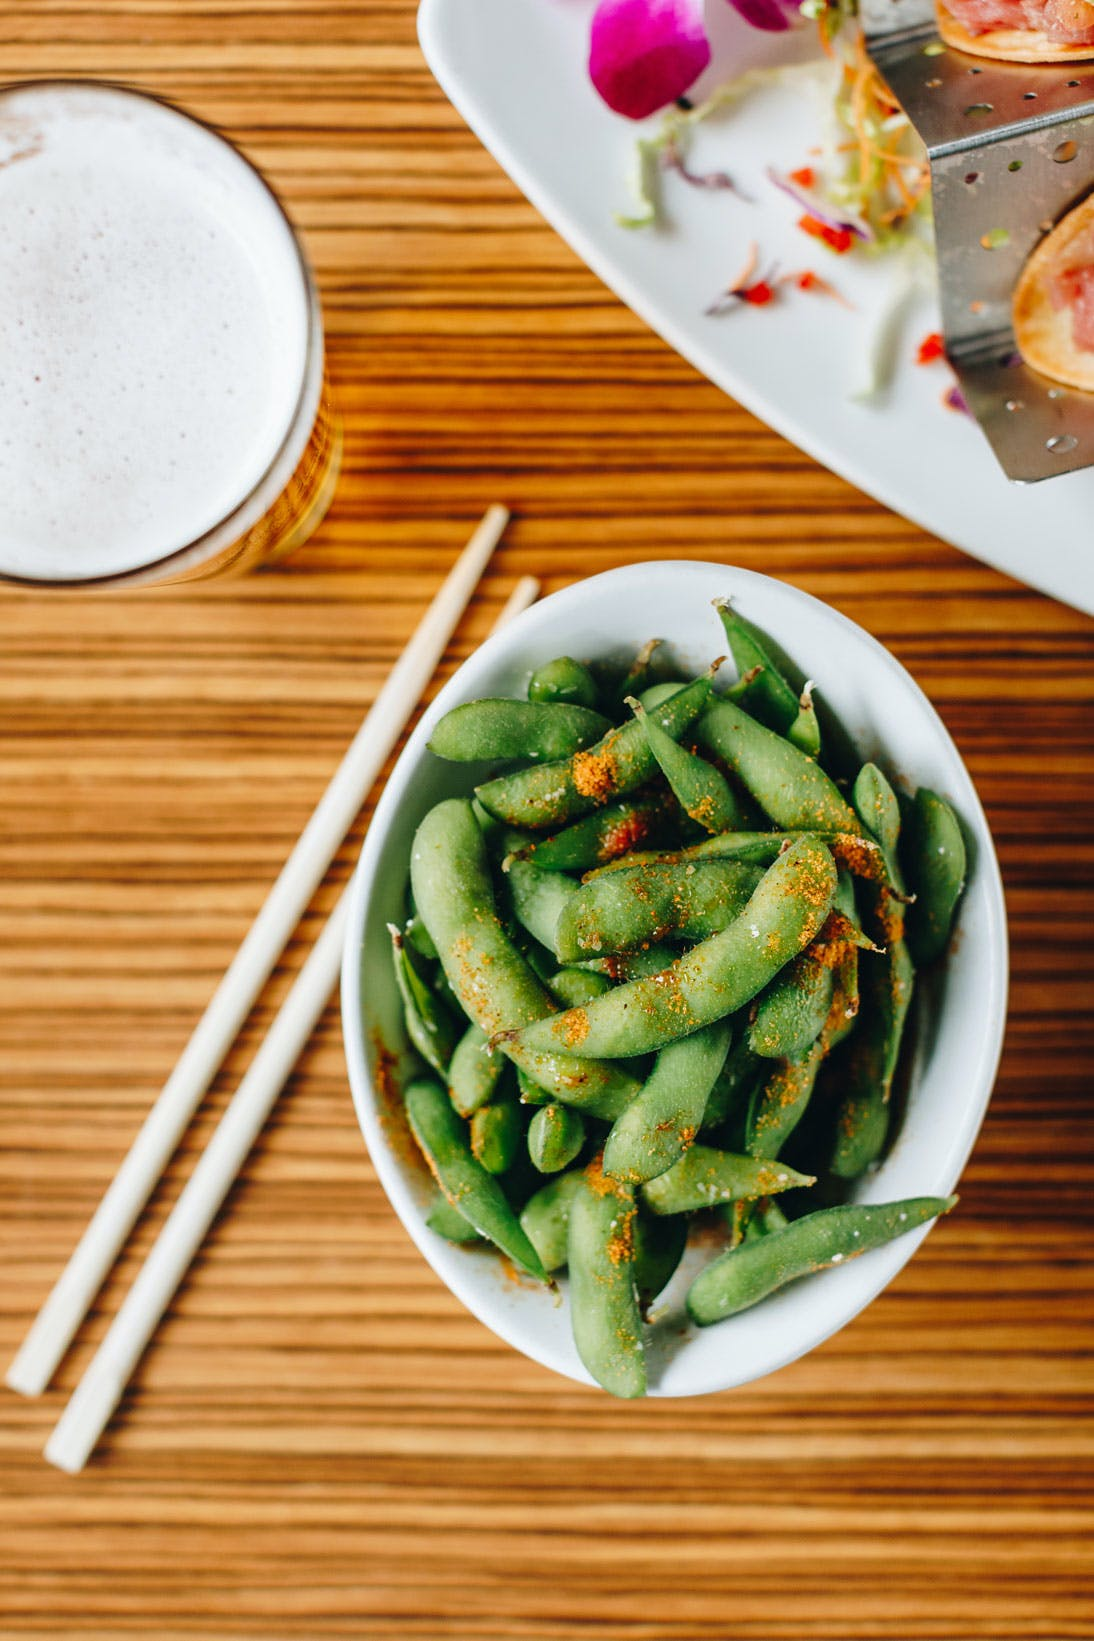 a bowl filled in with green peas sitting on a wooden table